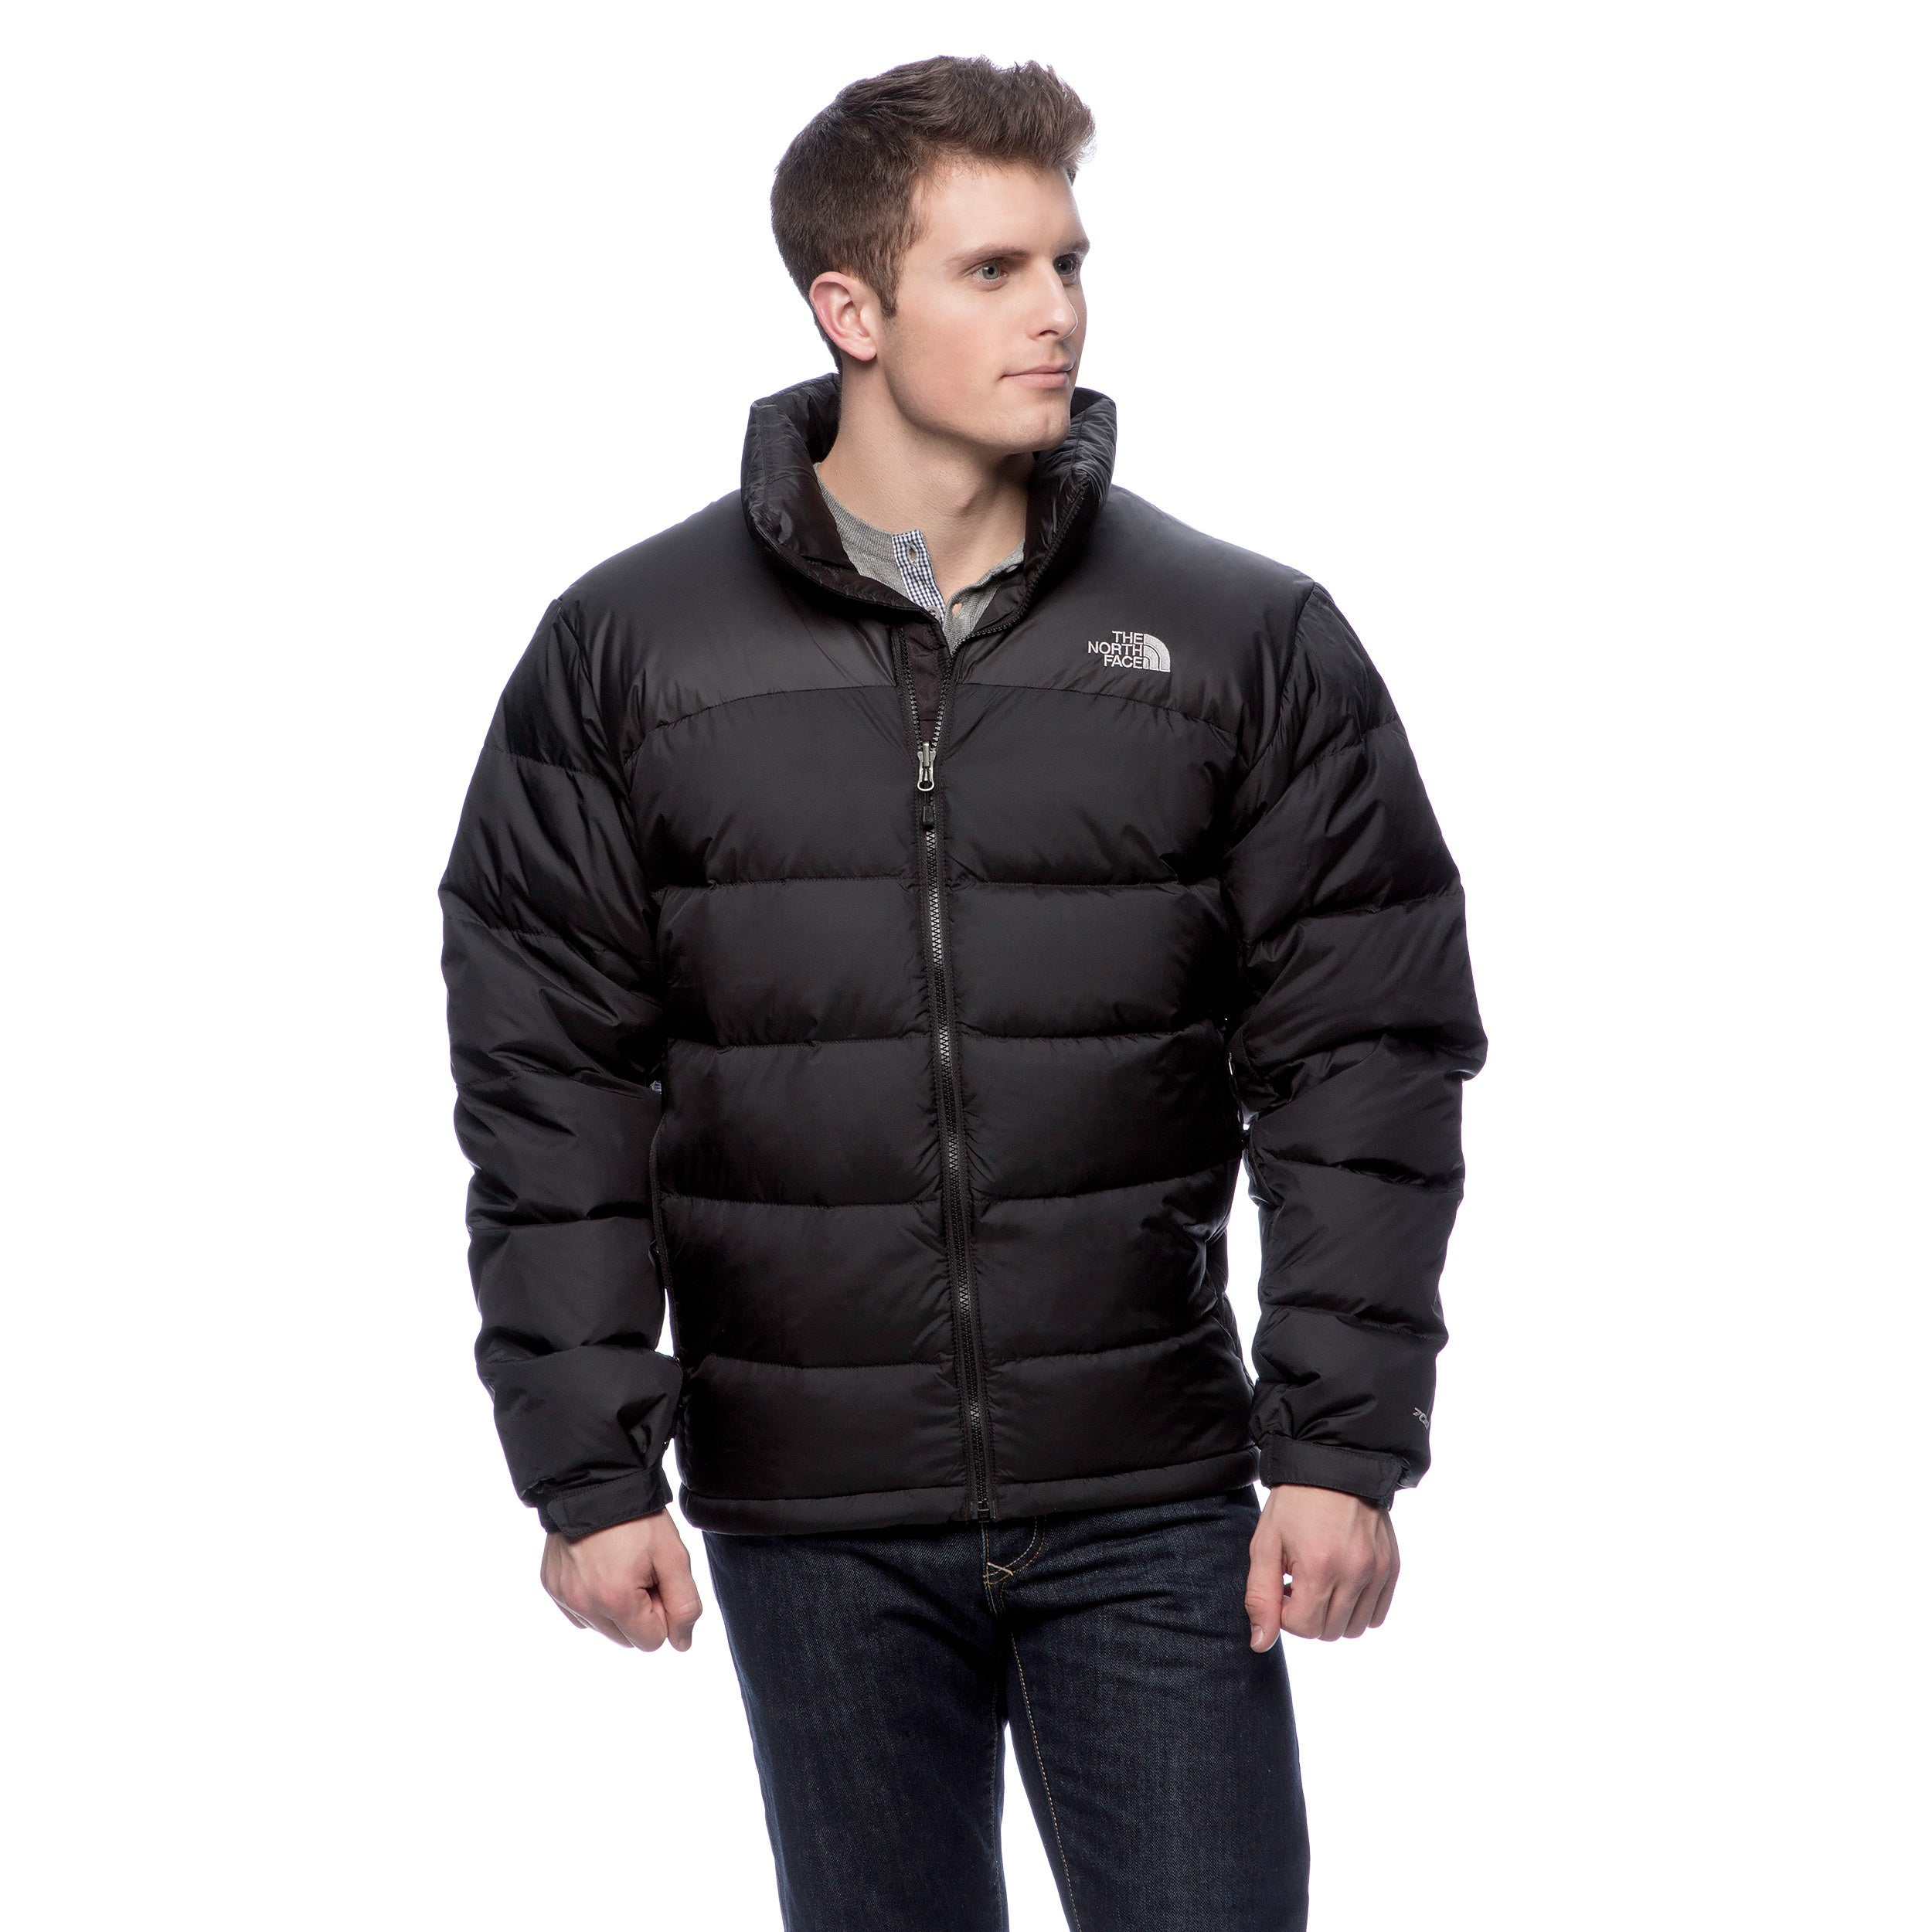 f9c0e36f487c Shop The North Face Men s Black Nuptse 2 Jacket - Free Shipping Today -  Overstock - 8503975